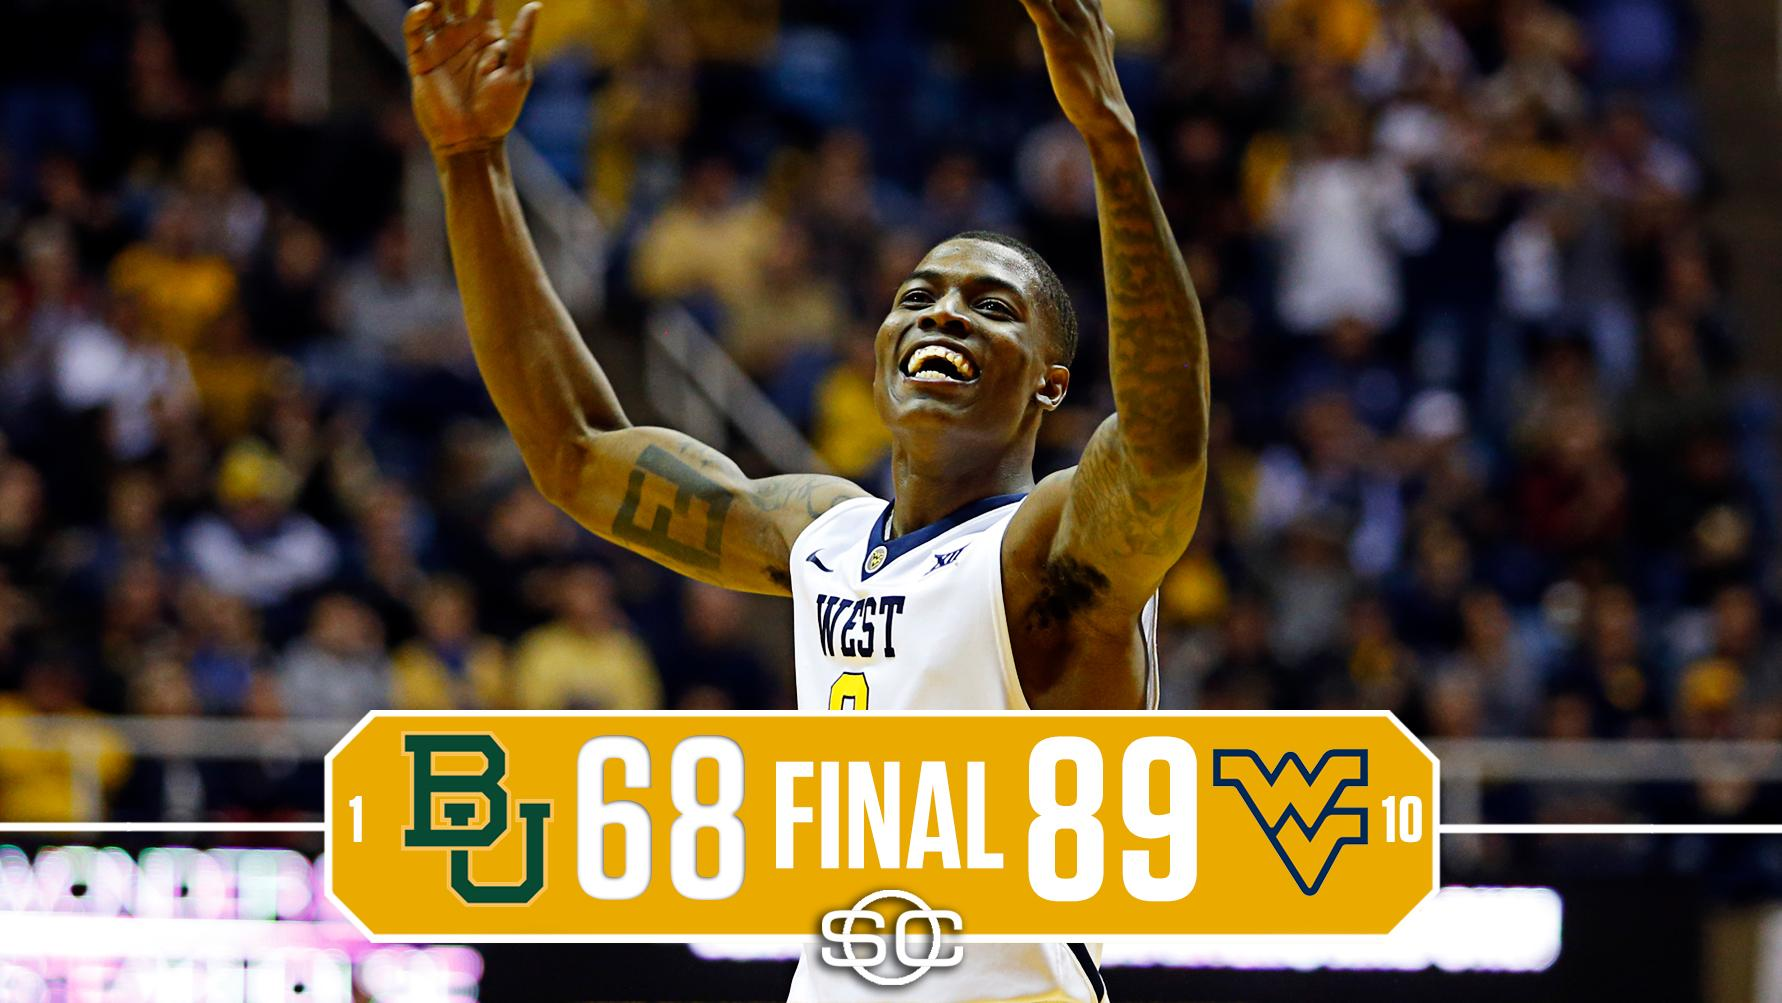 DOWN GOES NO. 1 BAYLOR!  No. 10 West Virginia shocks Baylor in its 1st game as a top-ranked team in school history. https://t.co/PQnGLKEGau